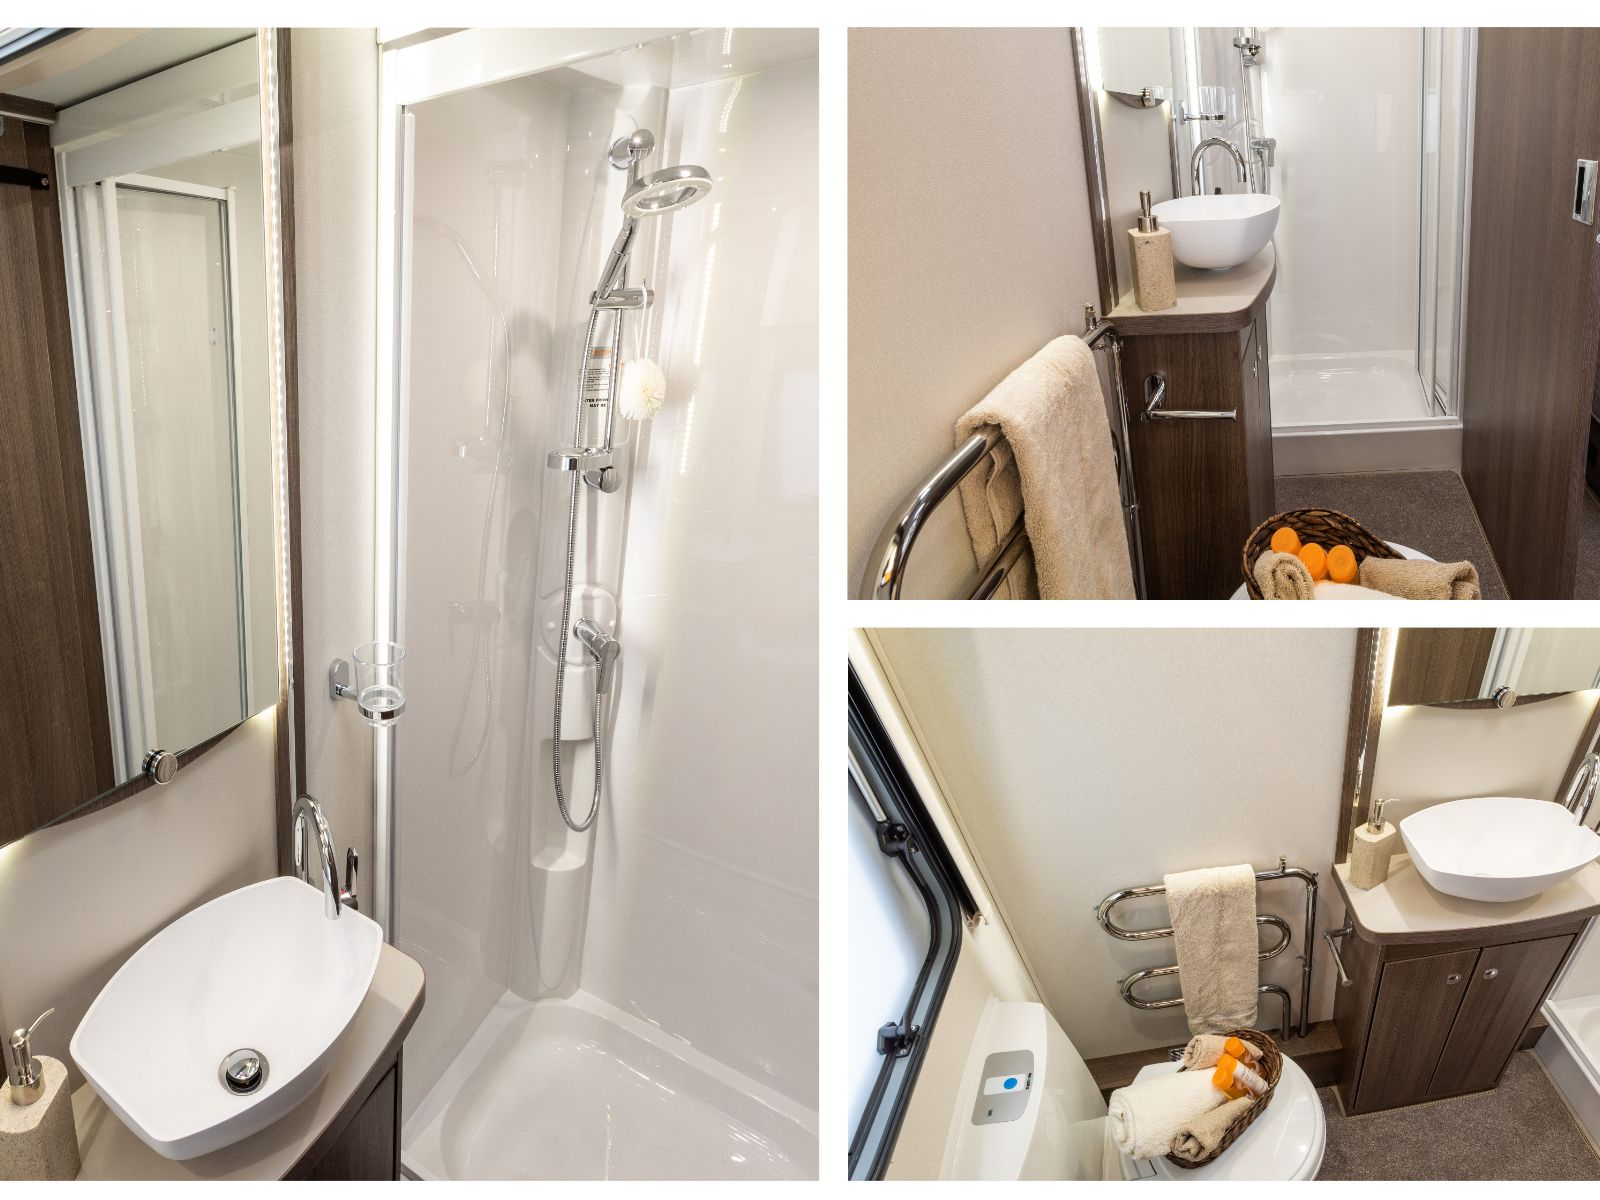 Bathroom collage with sink, walk in shower and toilet with assortment of toiletries'